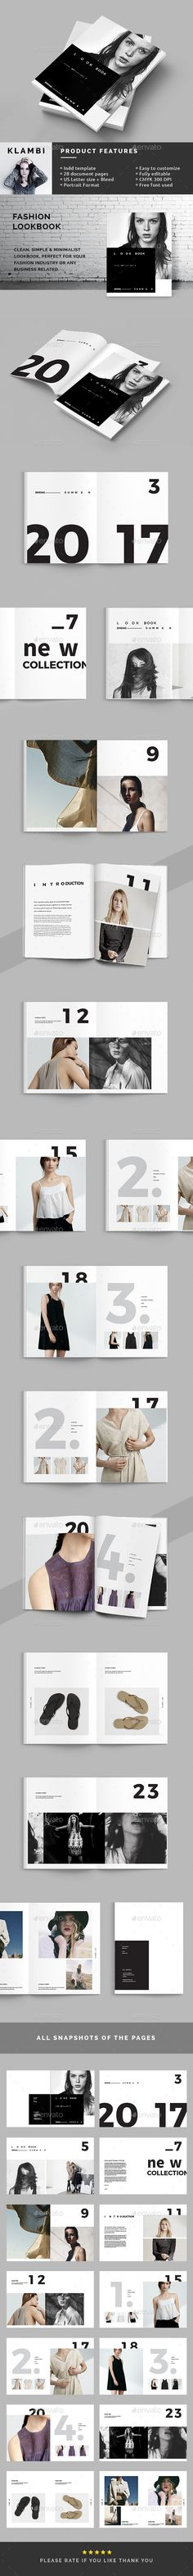 Fashion Lookbook — InDesign Template #clothes #modern • Download ➝ https://graphicriver.net/item/fashion-lookbook/16691612?ref=pxcr